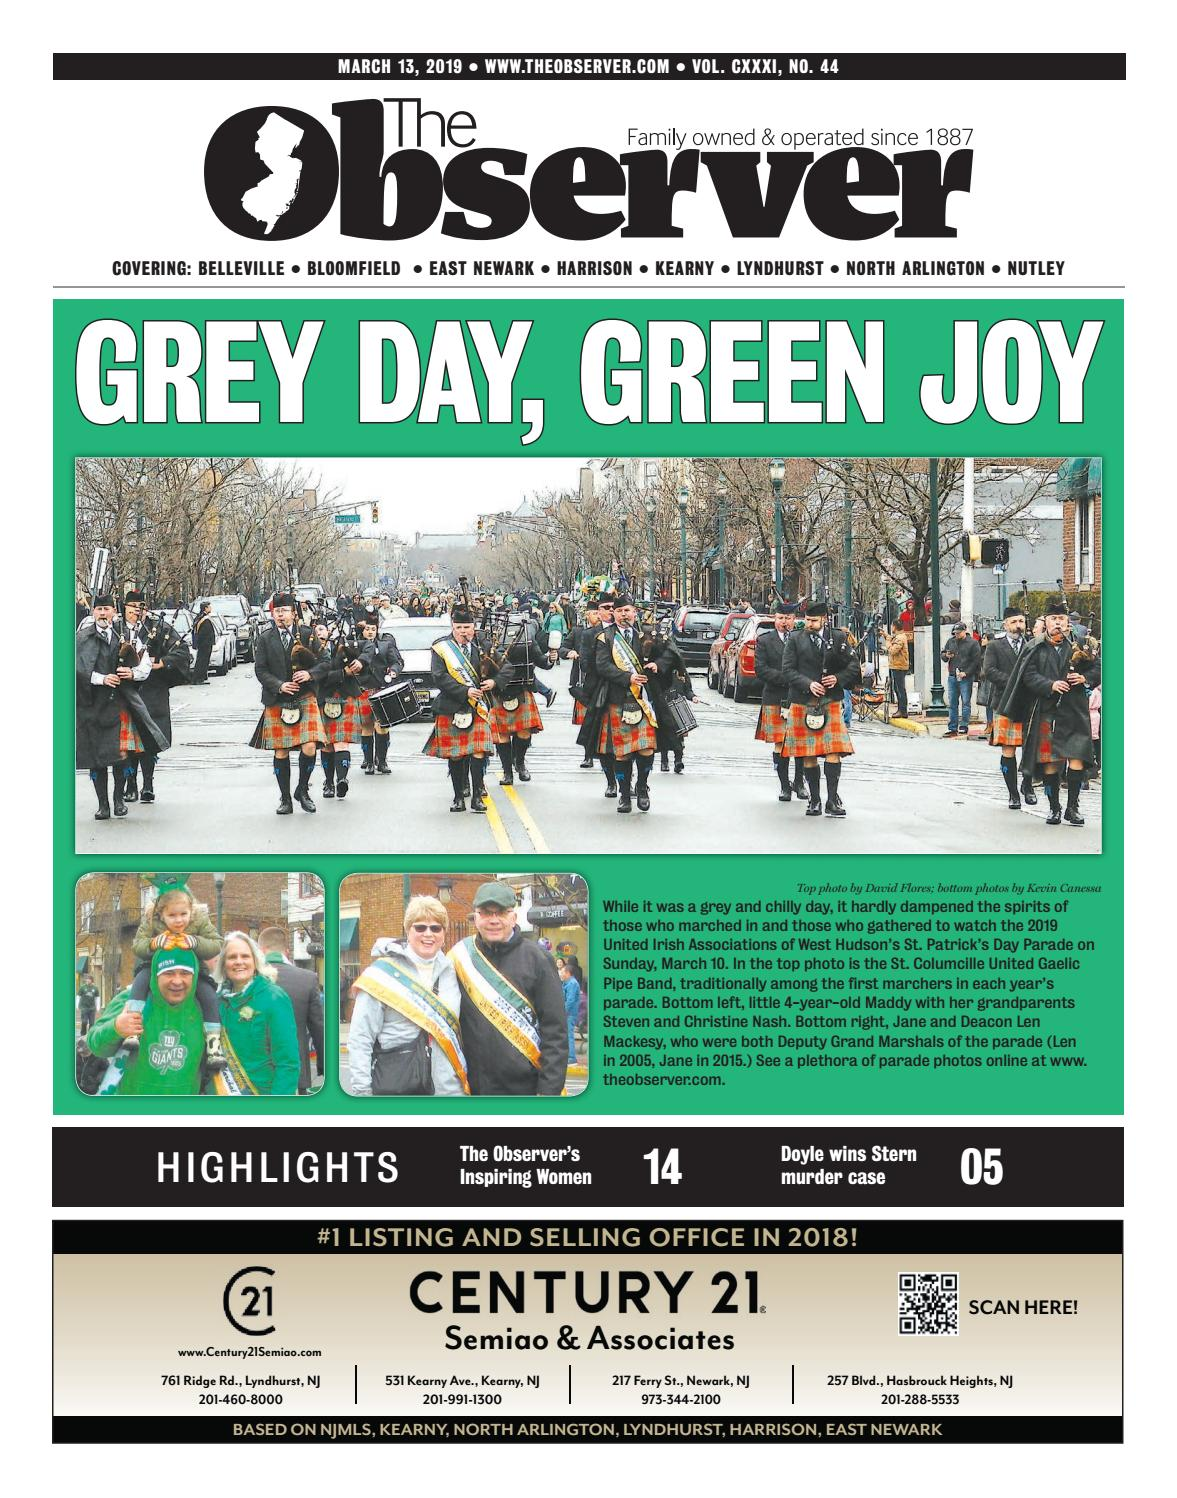 March 13, 2019 e-Edition of The Observer by Kevin Canessa Jr